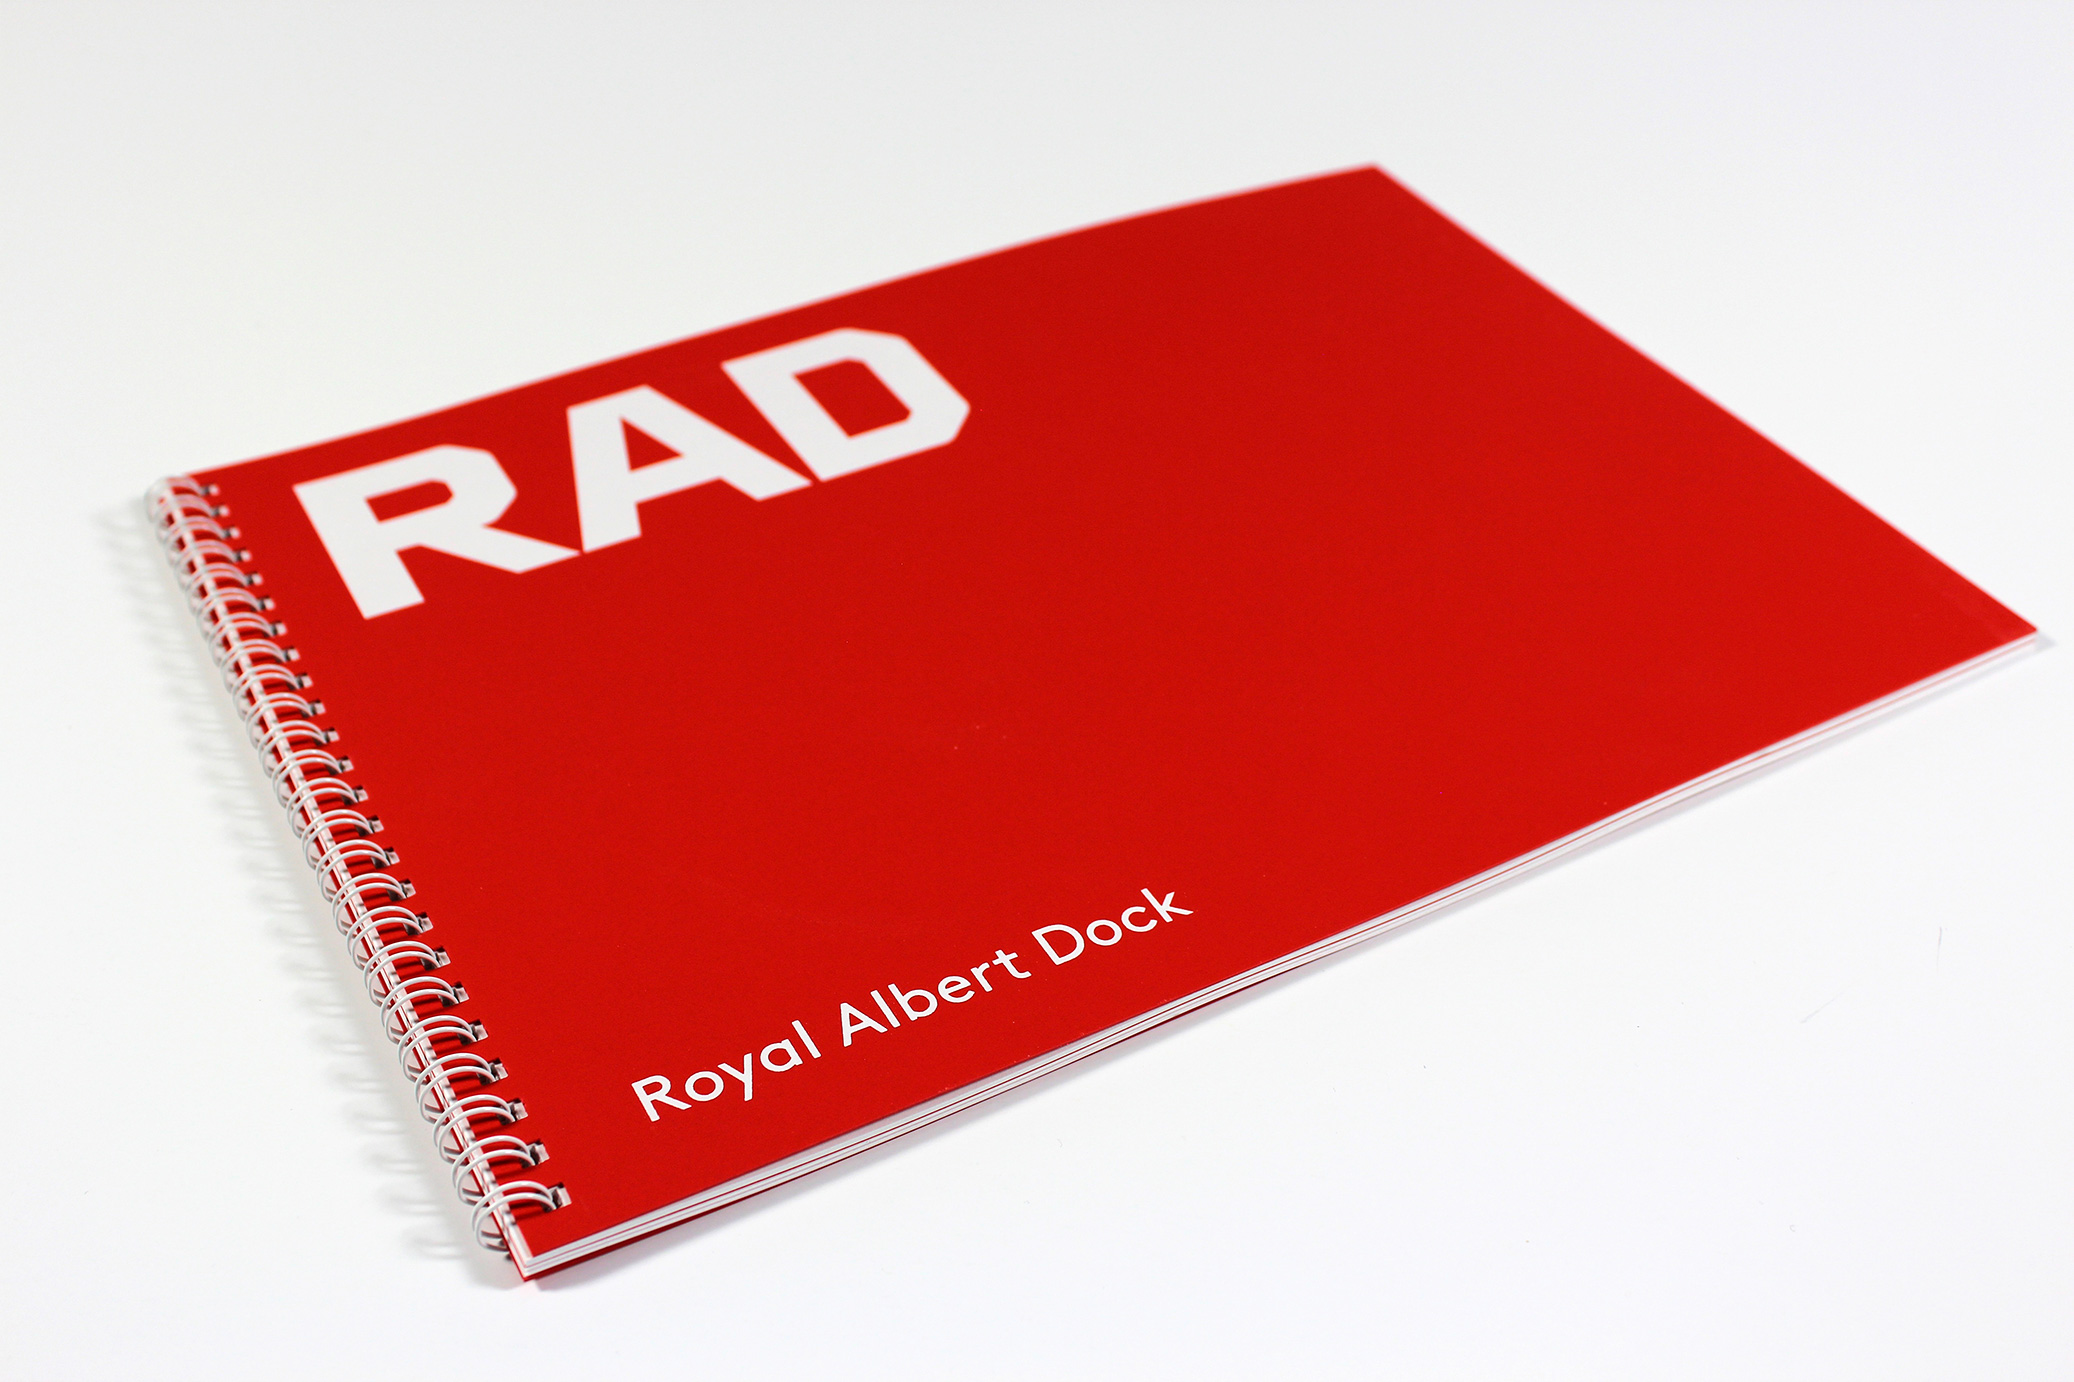 Printed Wiro-bound corporate promotional brochure for RAD - showing the binding and red card front cover